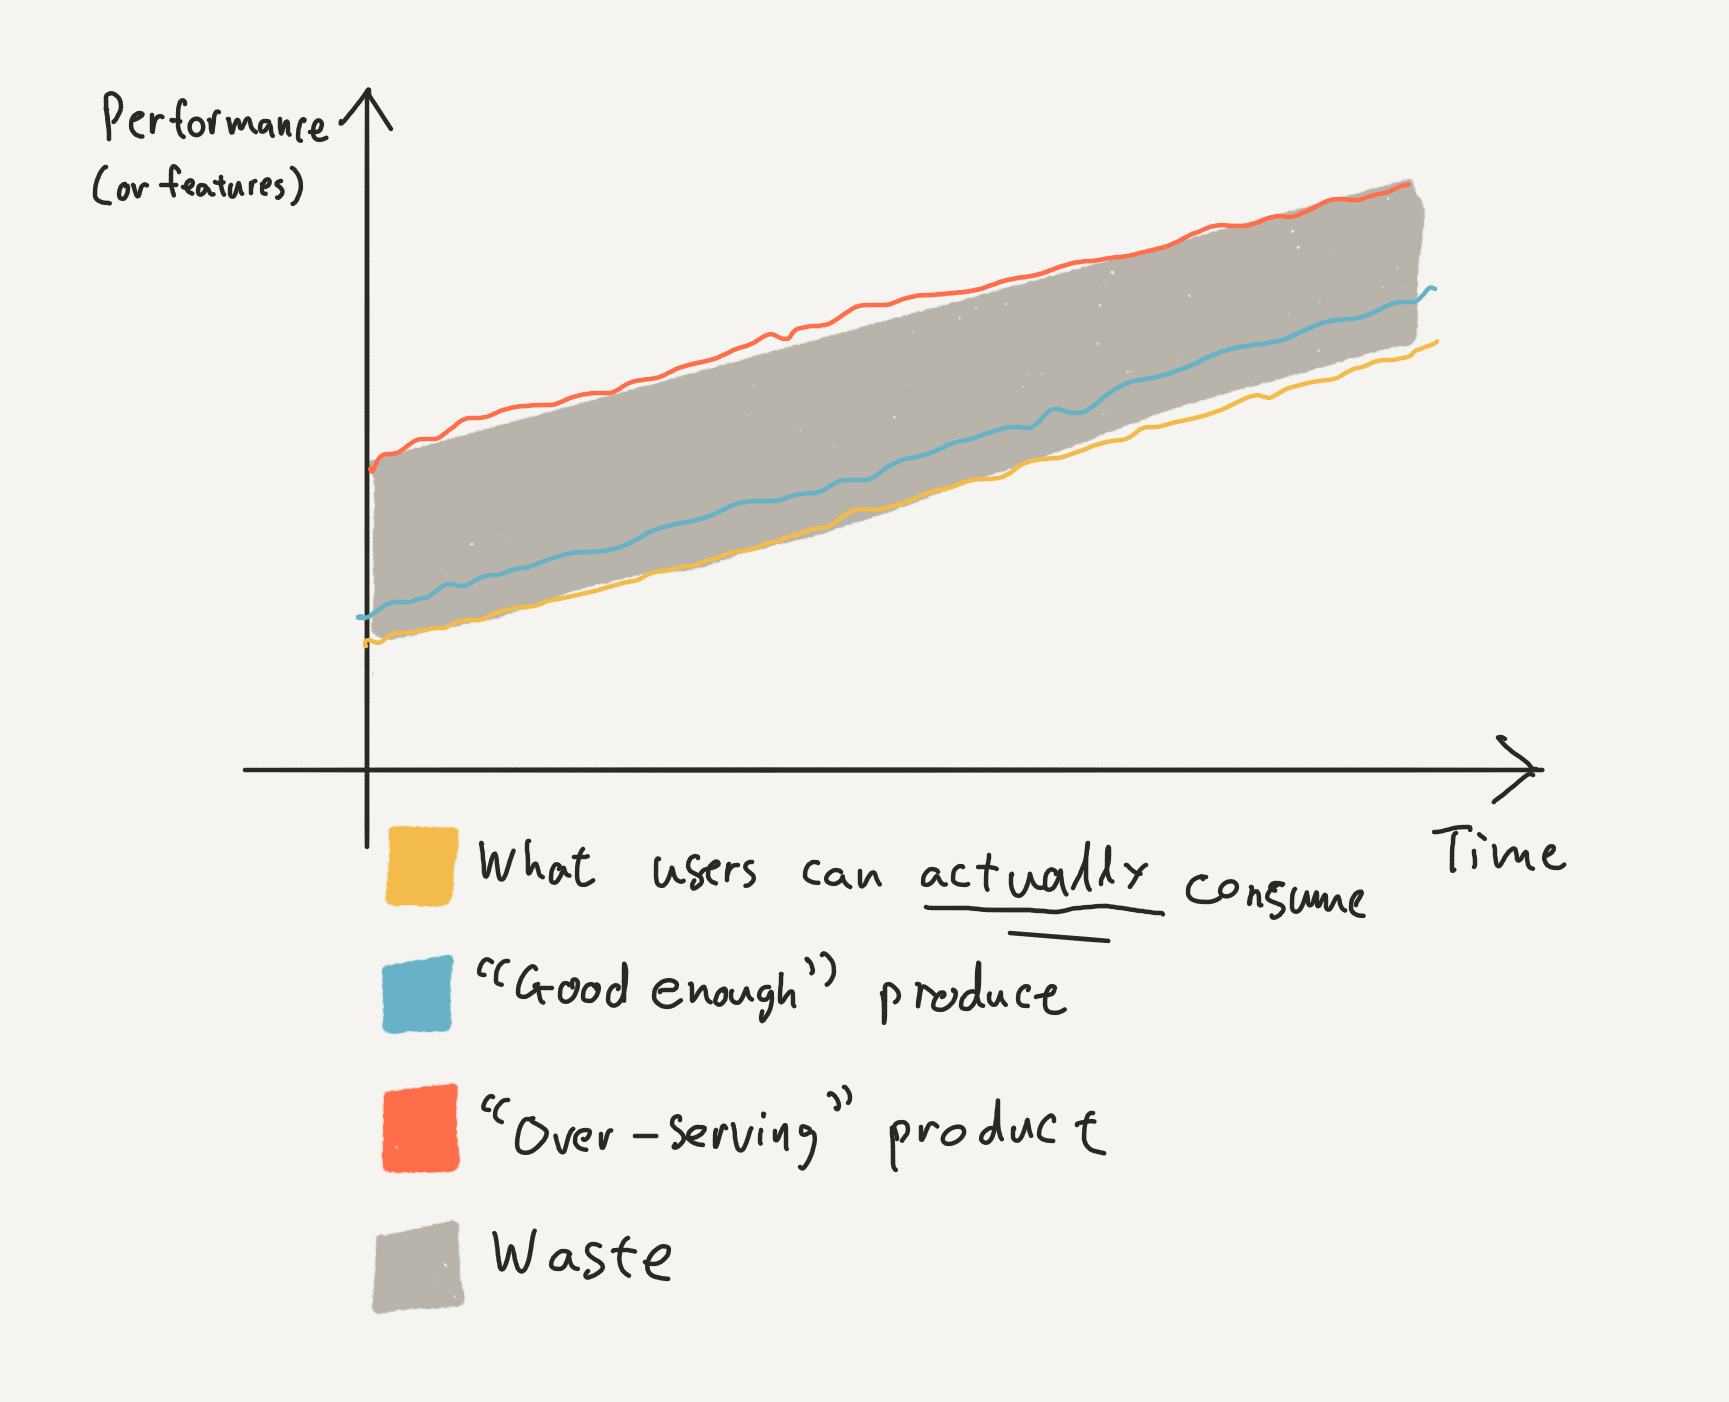 Over-serving products have been optimised well beyond what a user can consume.